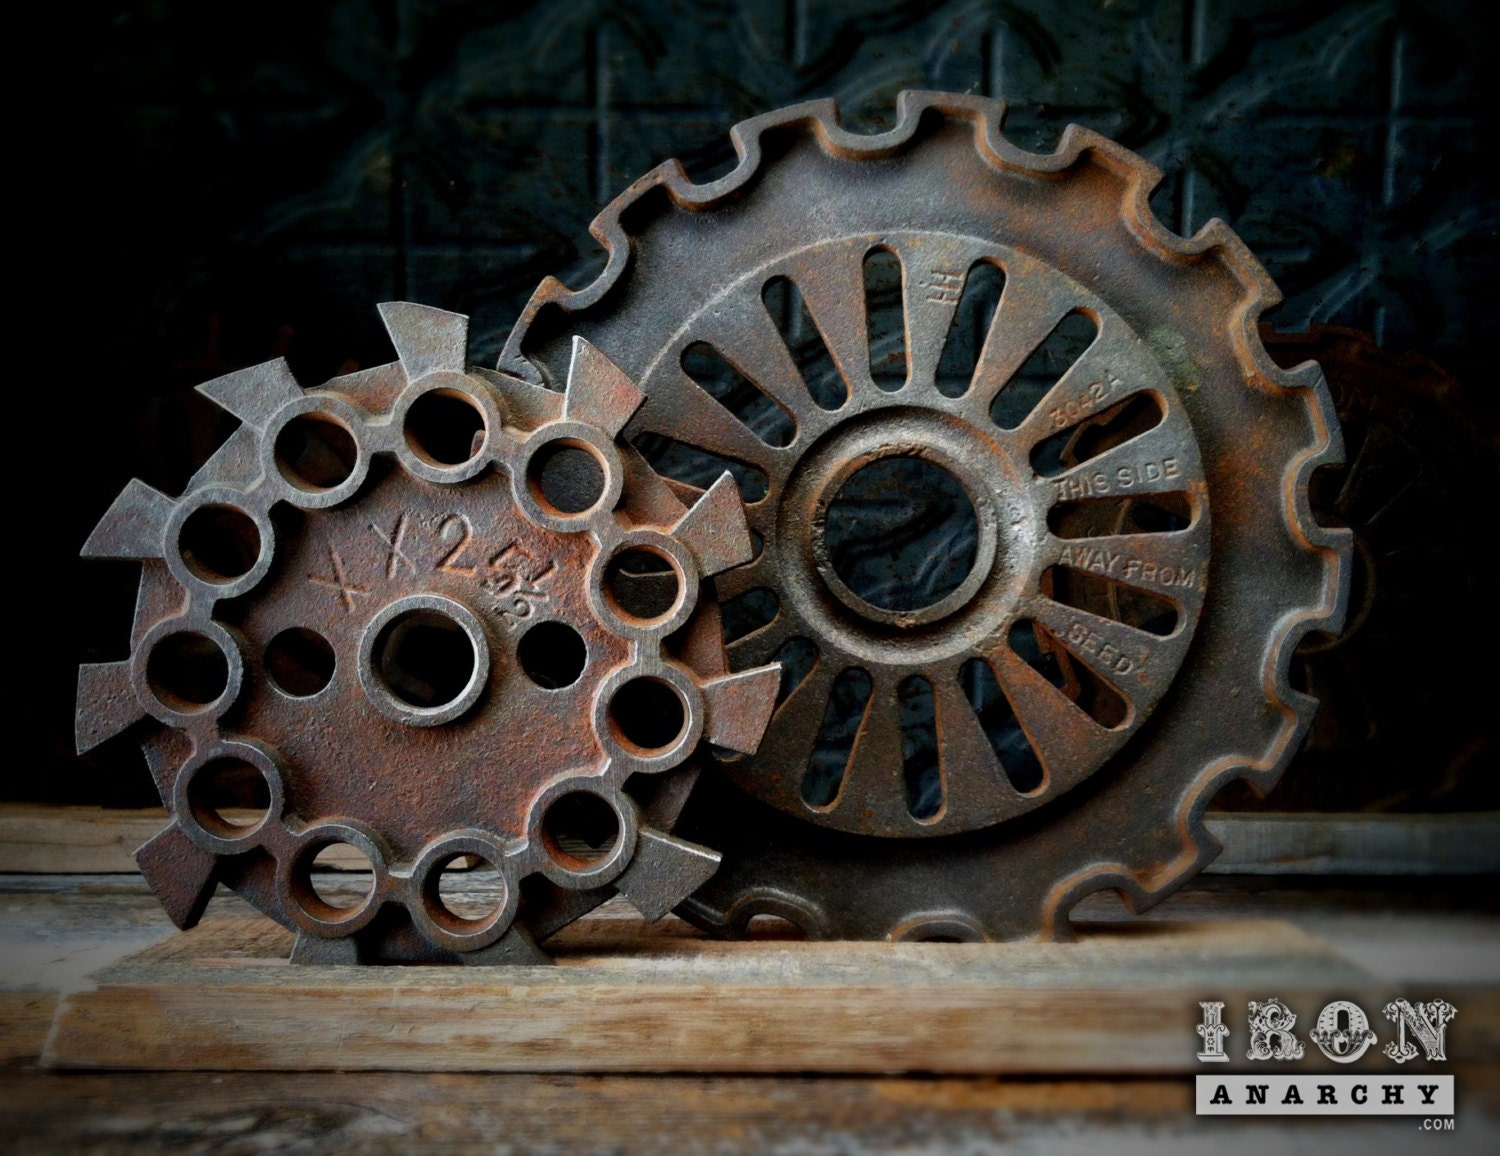 Cast Iron Wheels And Gears : Antique industrial cast iron gear sculpture machine by